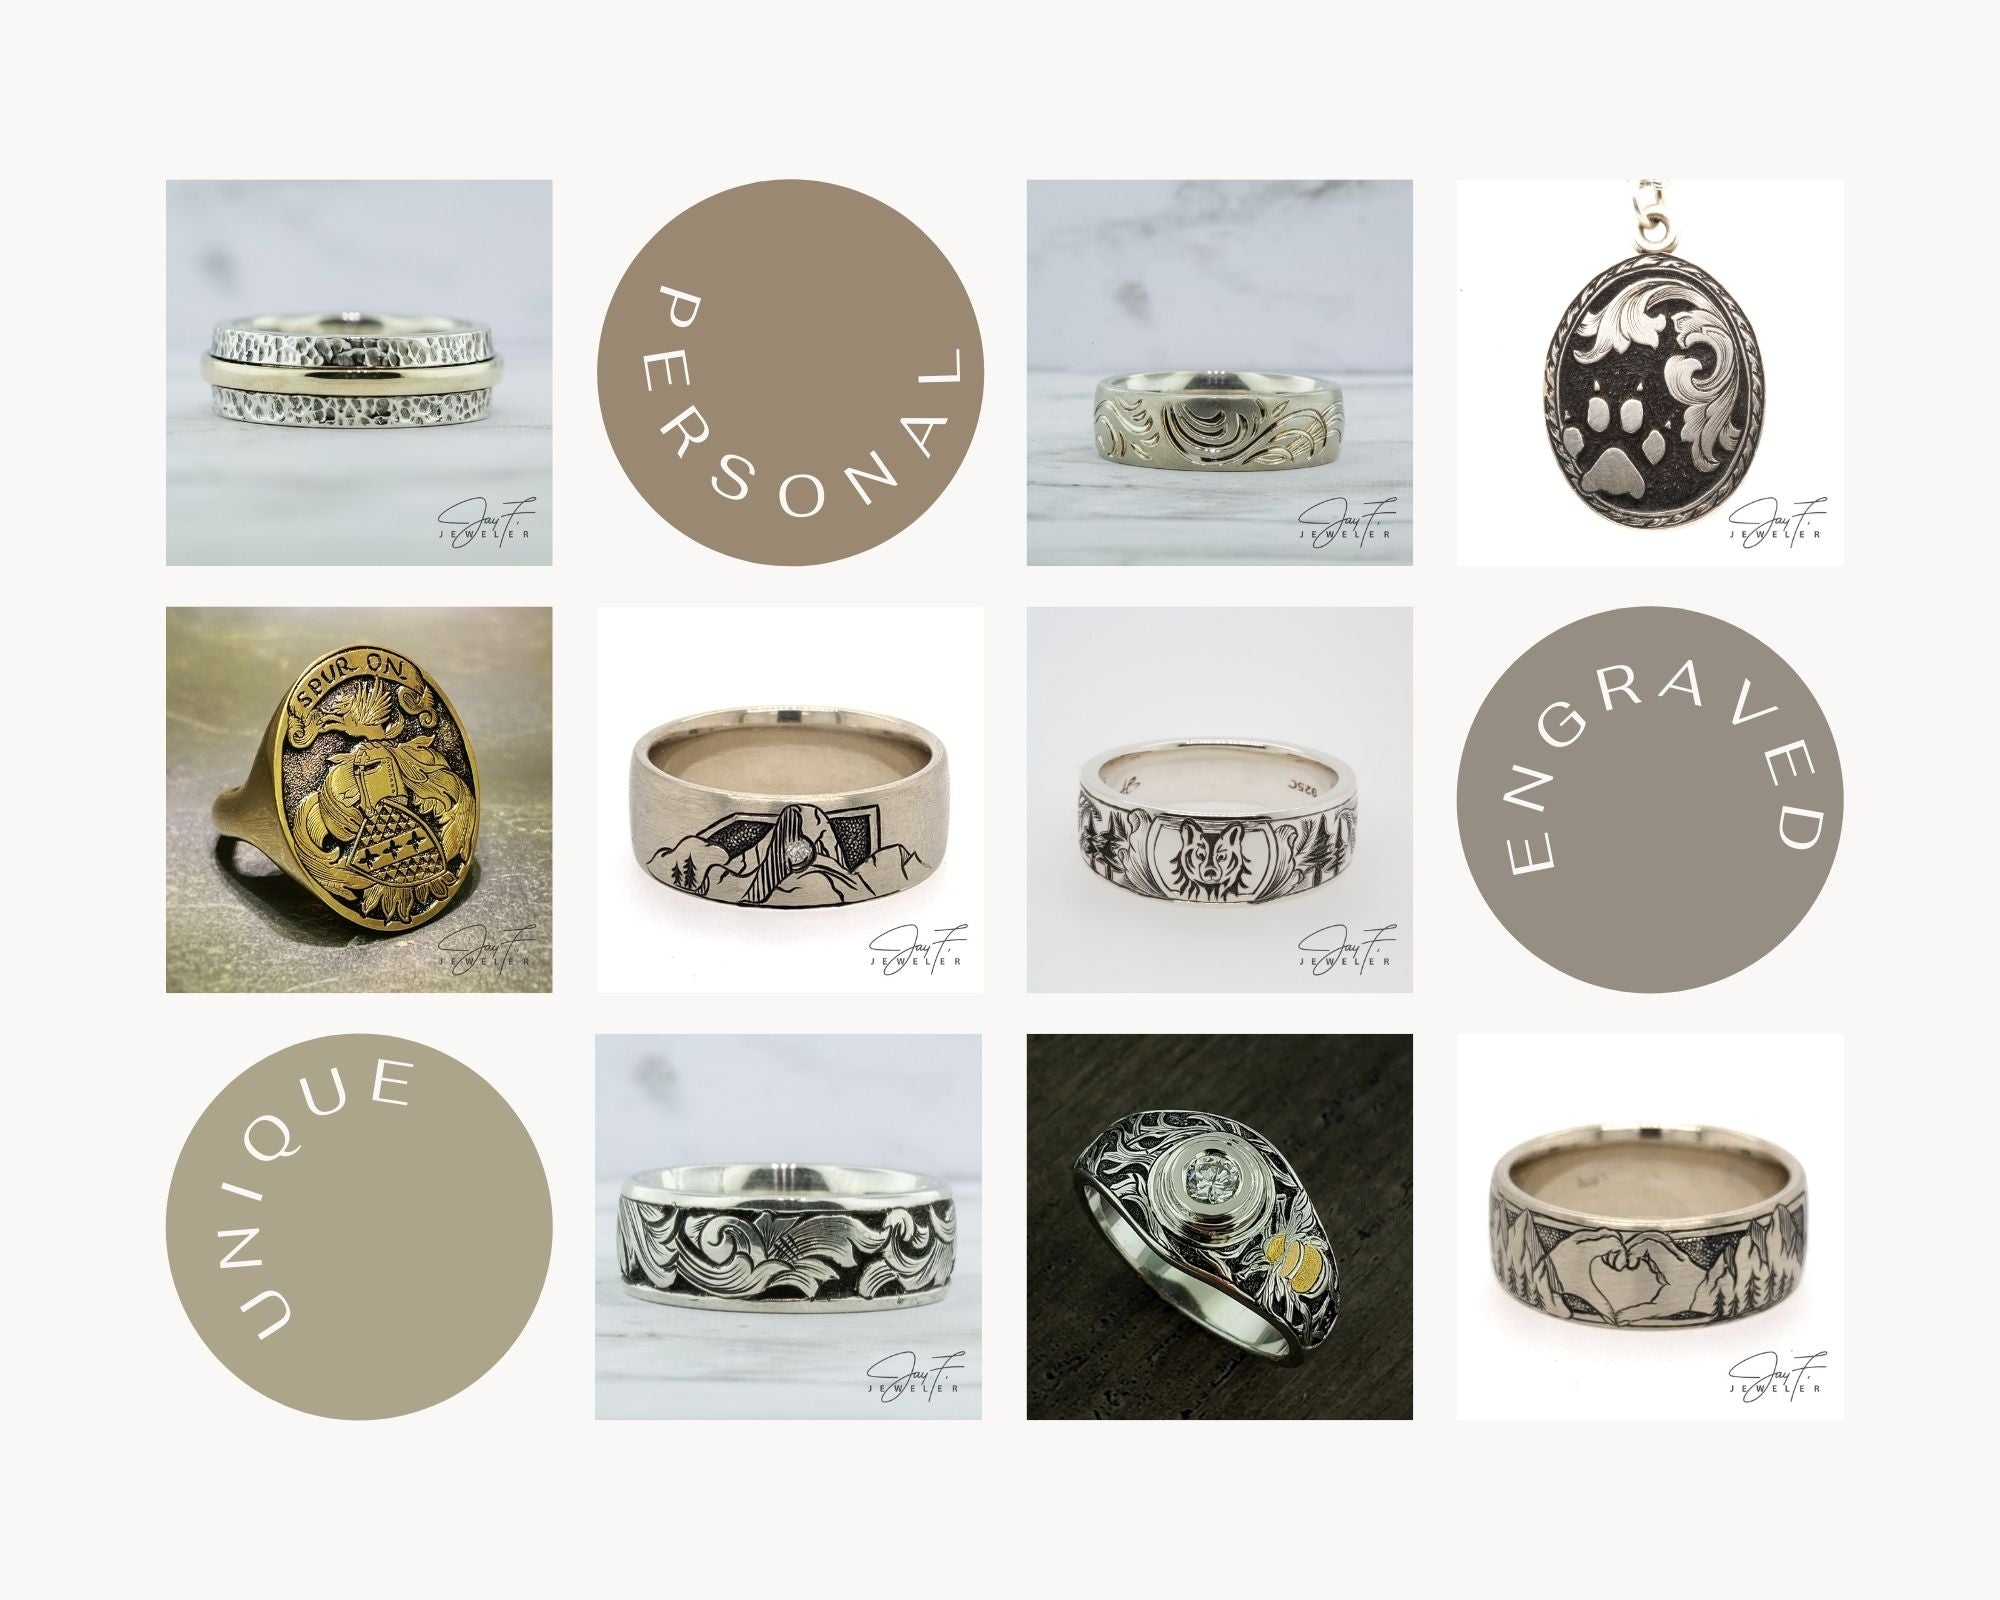 Collage of photo examples of hand engraved custom jewelry pieces from Jay F. Jeweler.